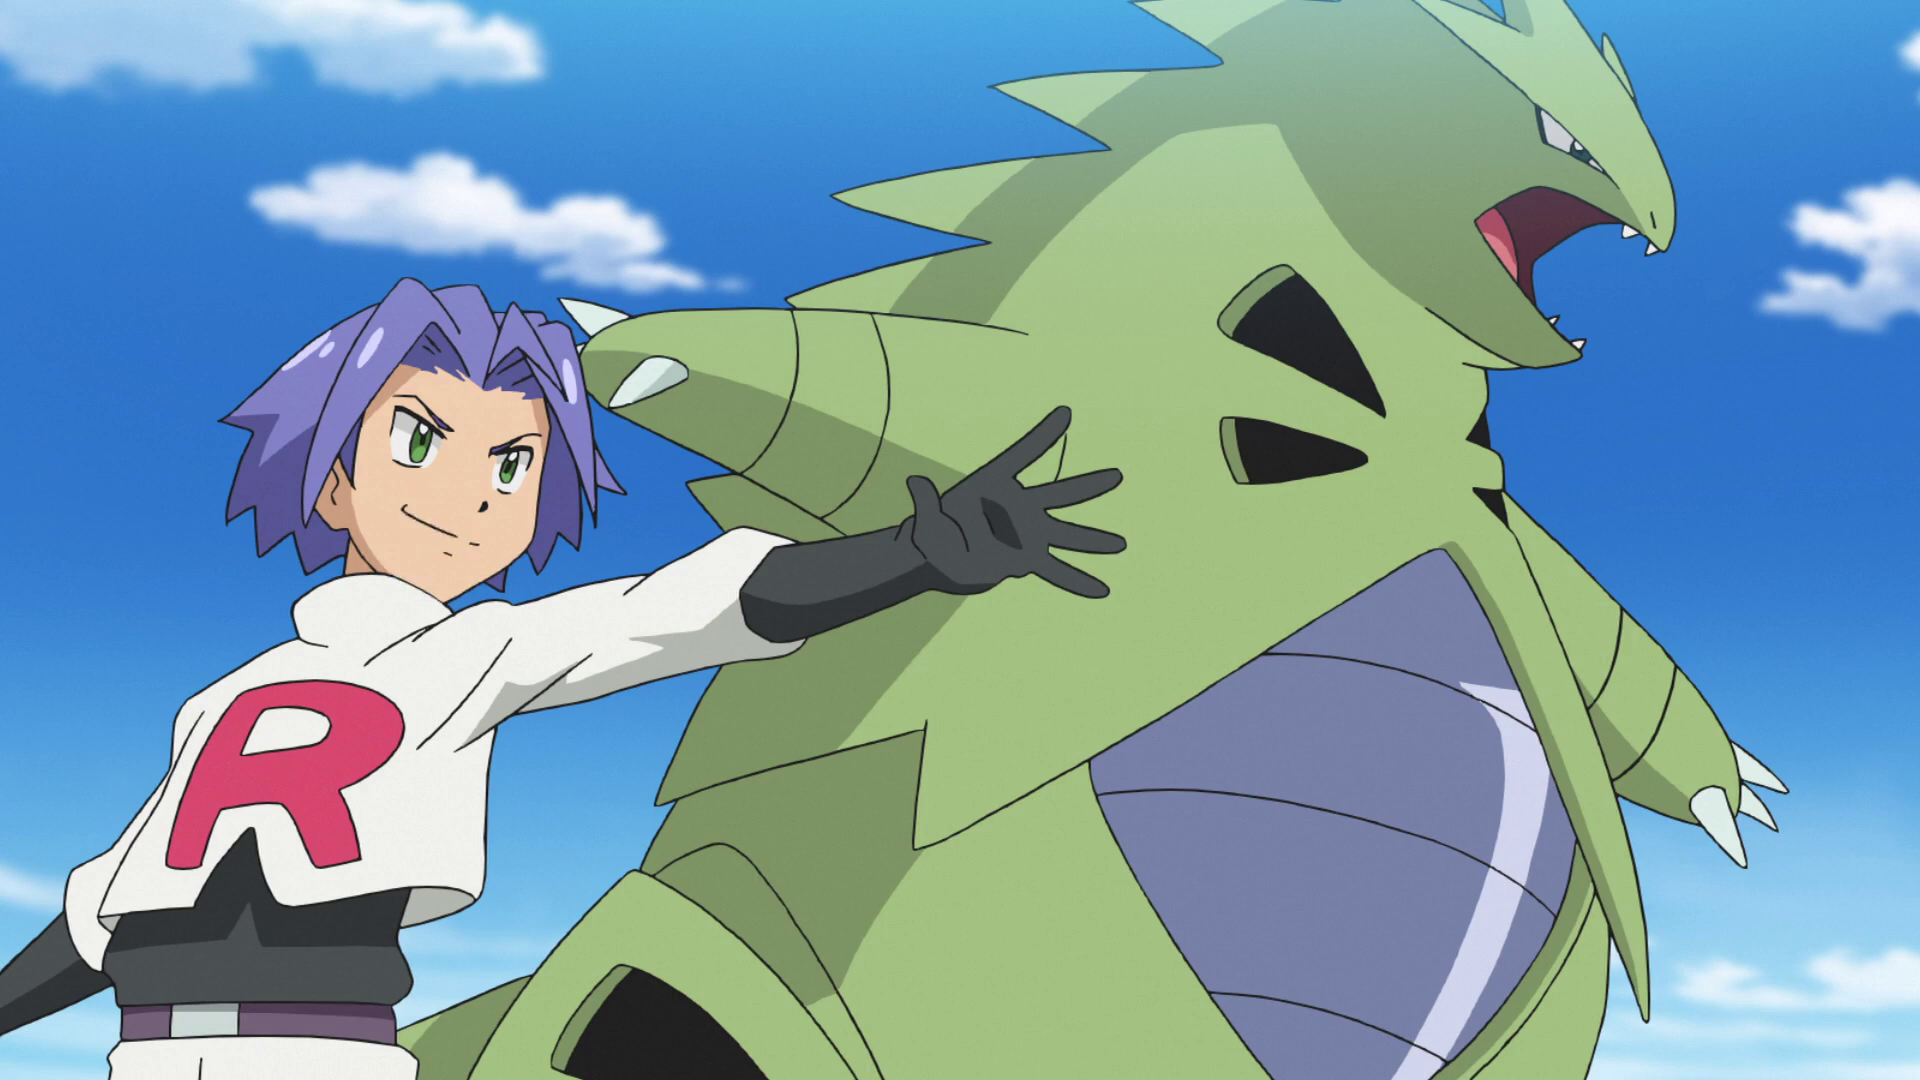 James used Tyranitar to prevent Ash and Goh from foiling Team Rocket's scheme to steal a group of wild Ivysaur and Bulbasaur. It was eventually defeated by Pikachu's Thunderbolt. Tyranitar's known moves are Fire Fang, Dark Pulse, Stone Edge, and Hyper Beam.